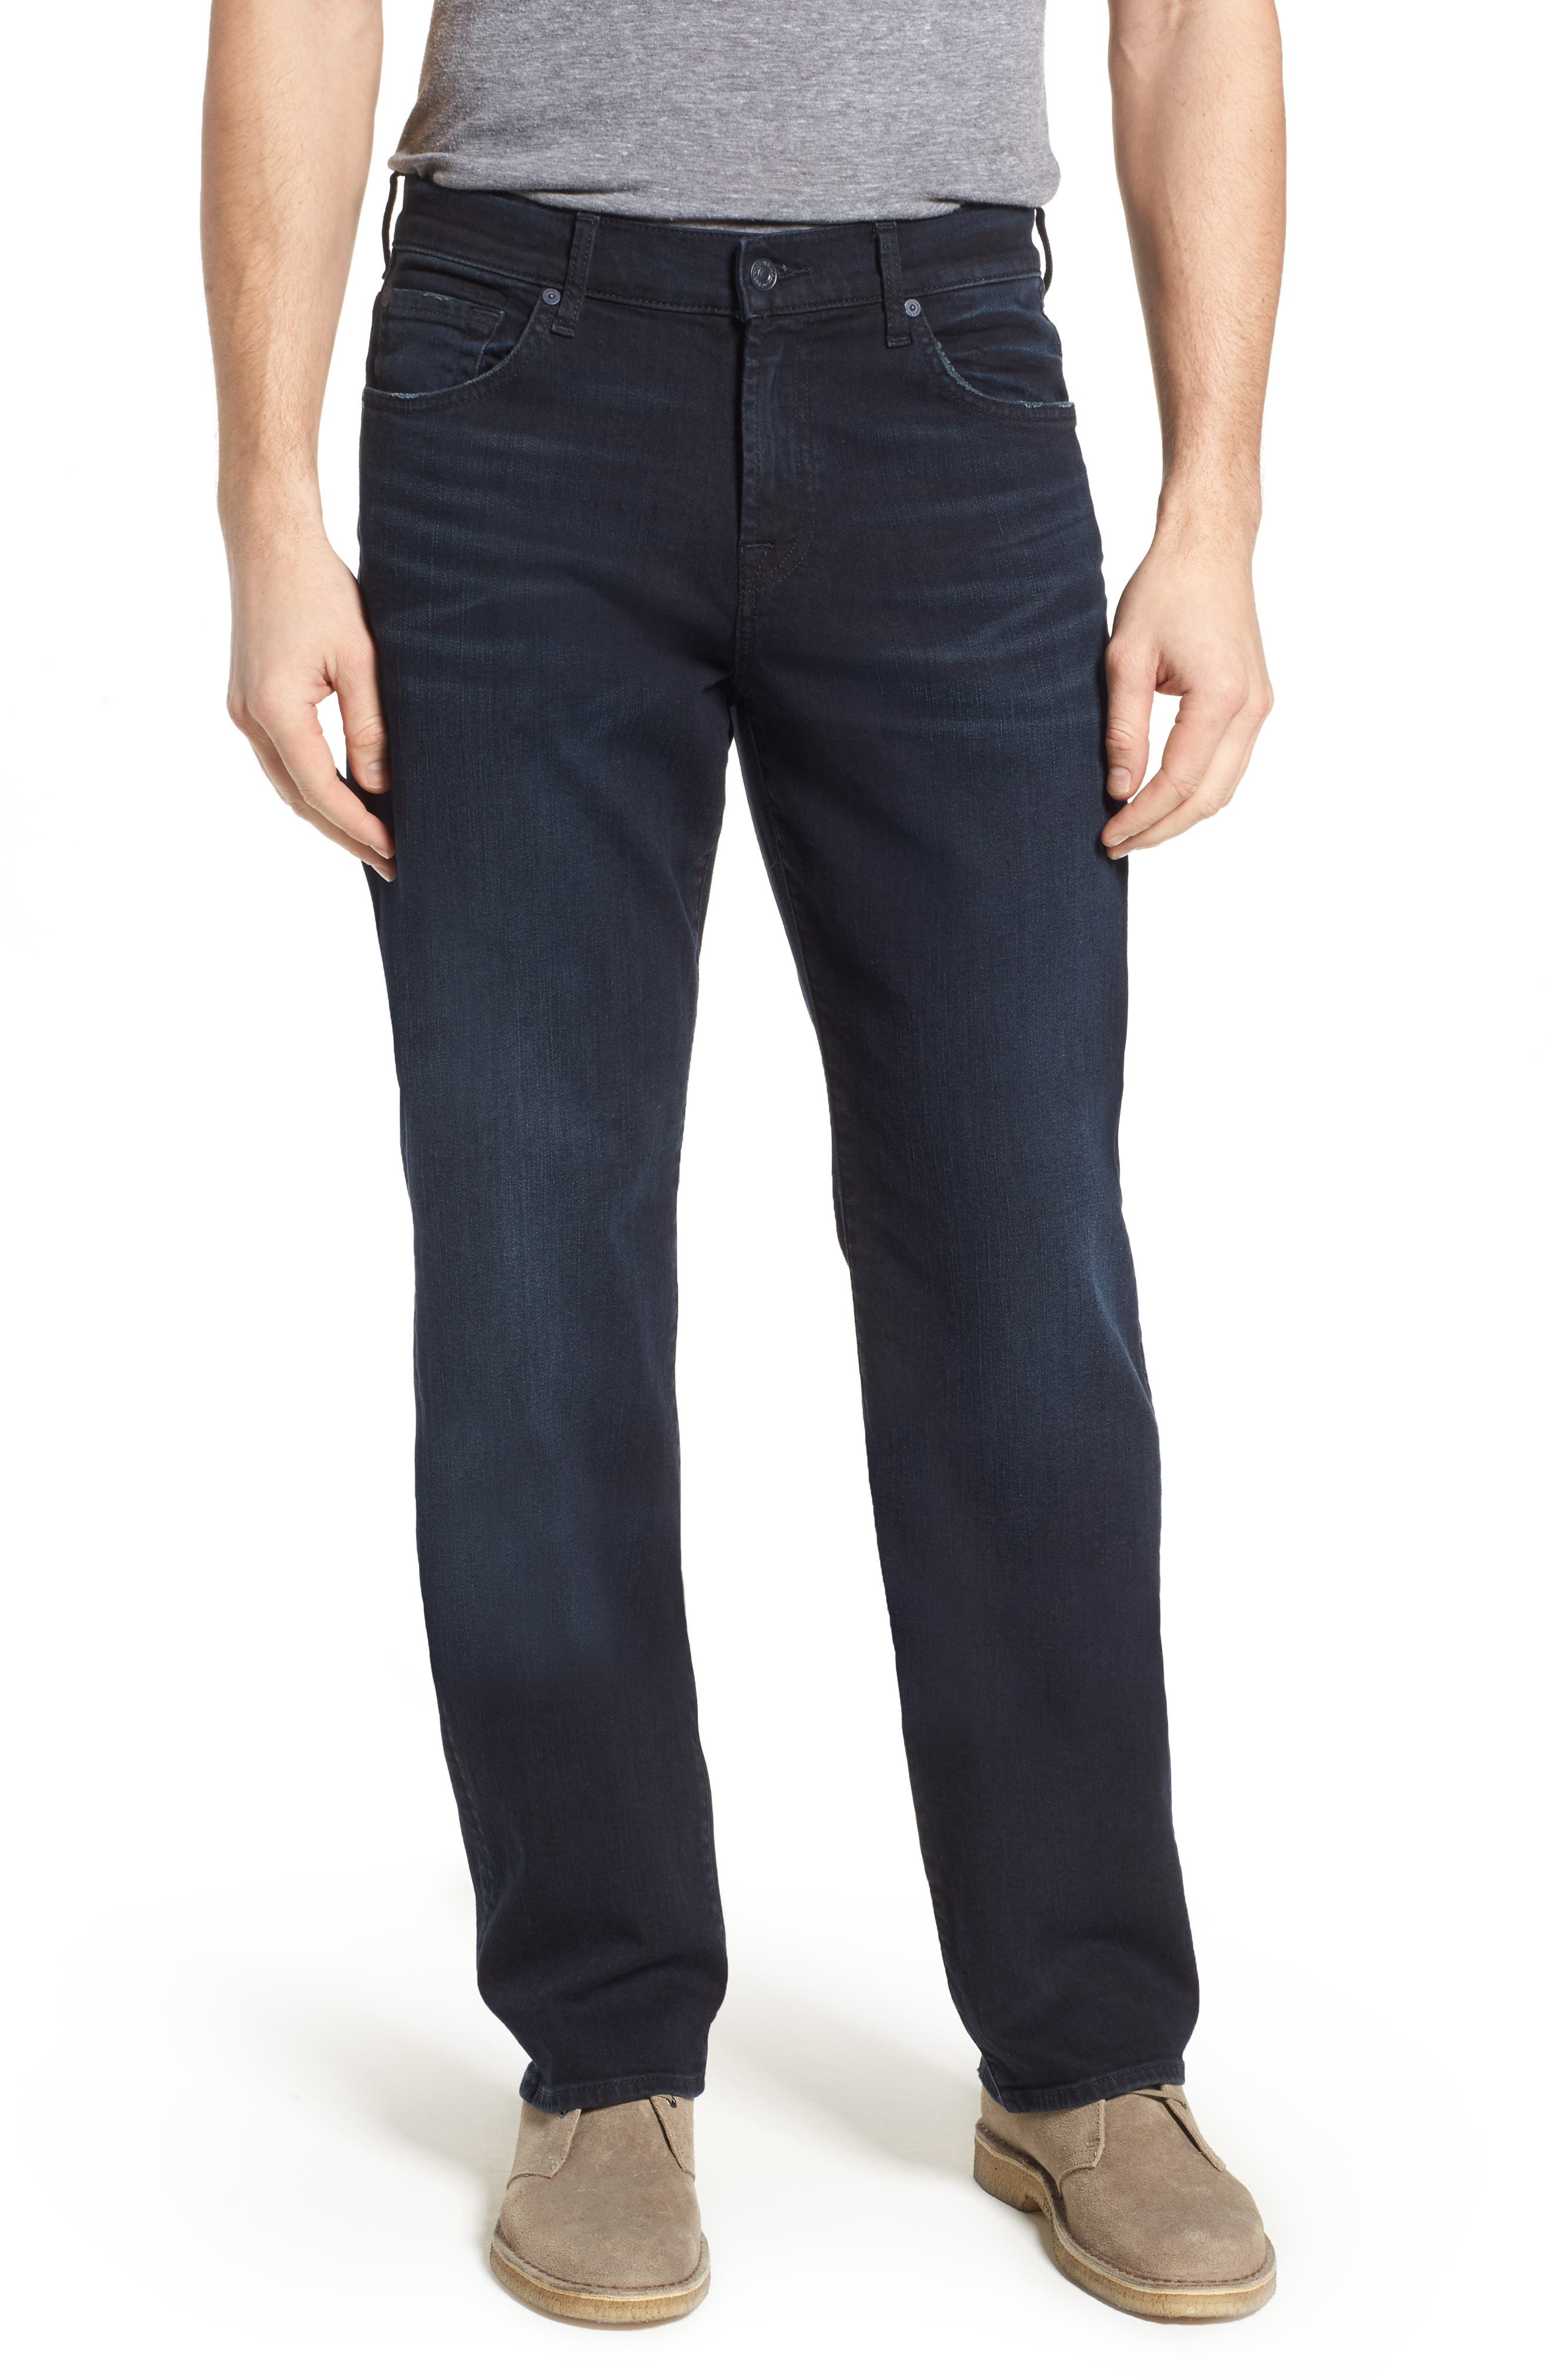 'Austyn- LuxePerformance' Relaxed Fit Jeans,                             Main thumbnail 1, color,                             Havoc